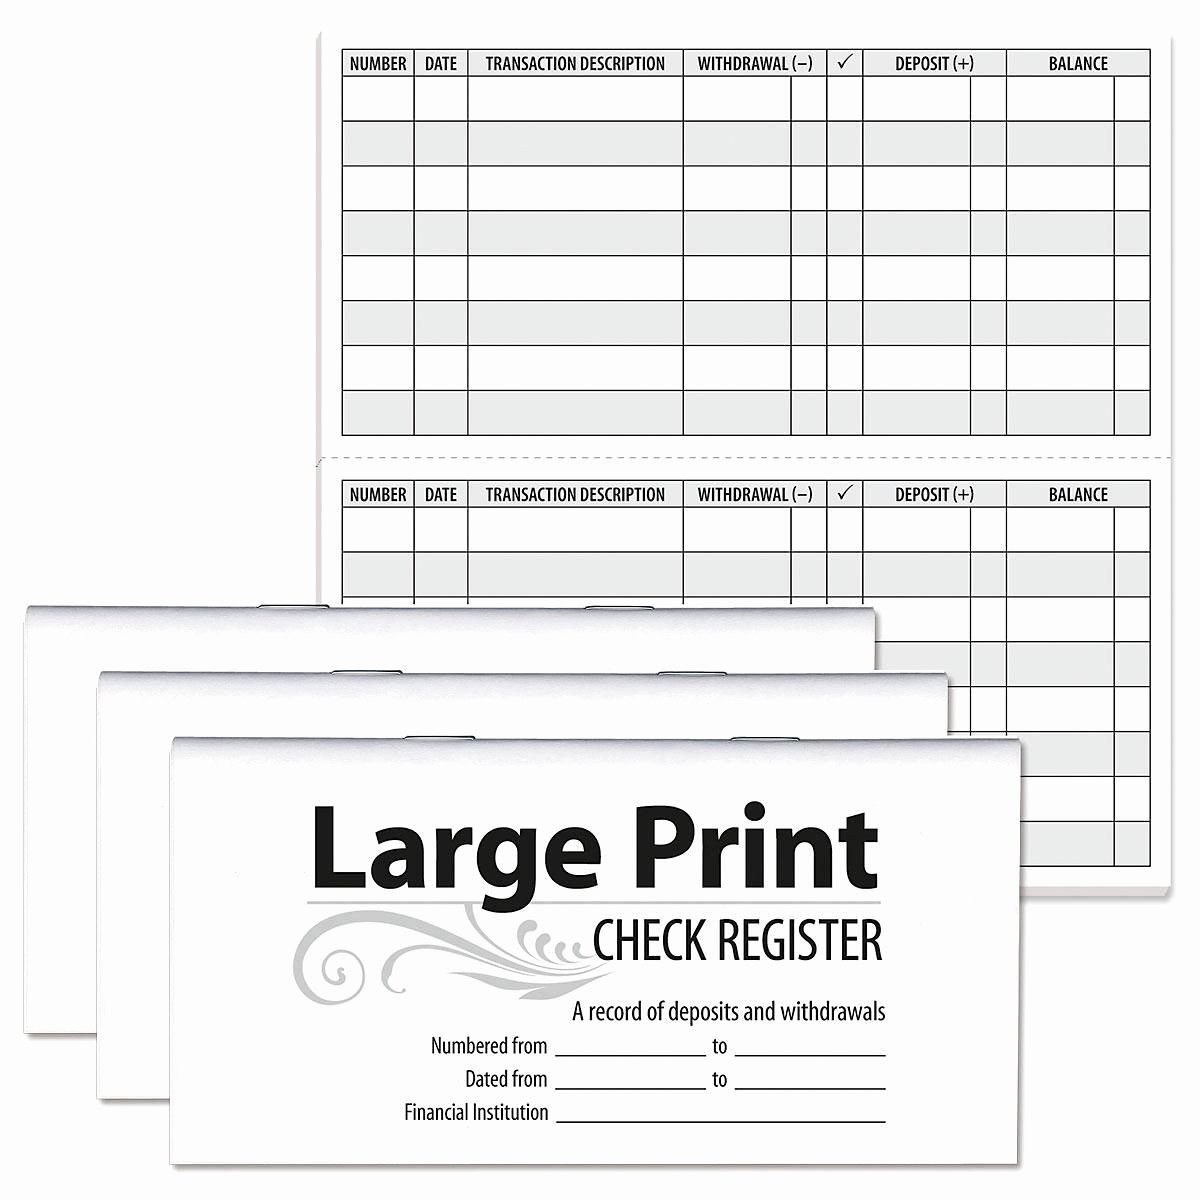 Large Print Check Register Printable Elegant Print Check Registers